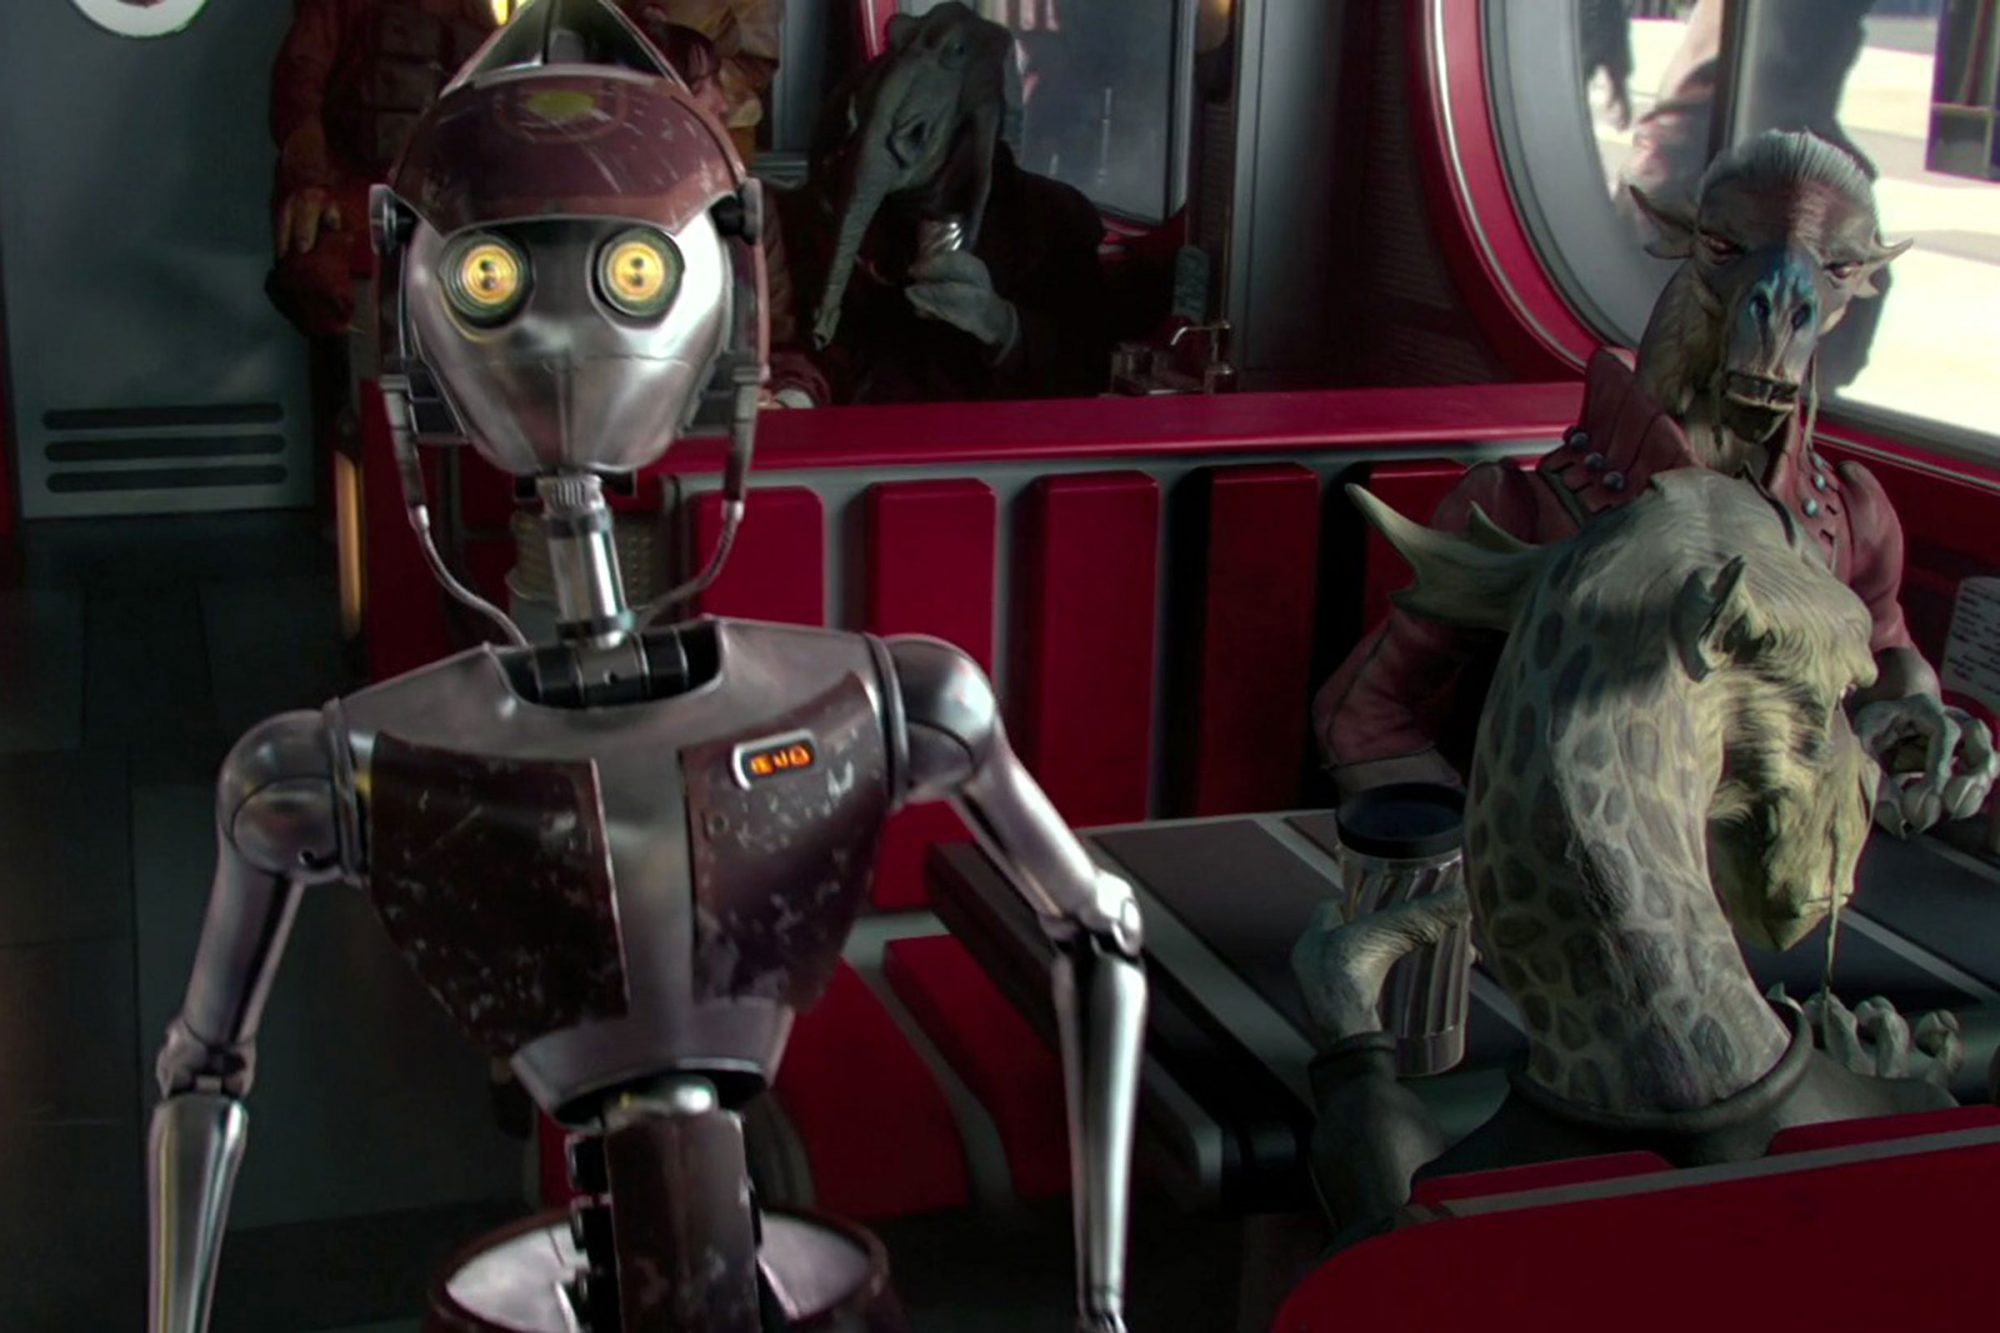 15. WA-7 waitress droid (Attack of the Clones)